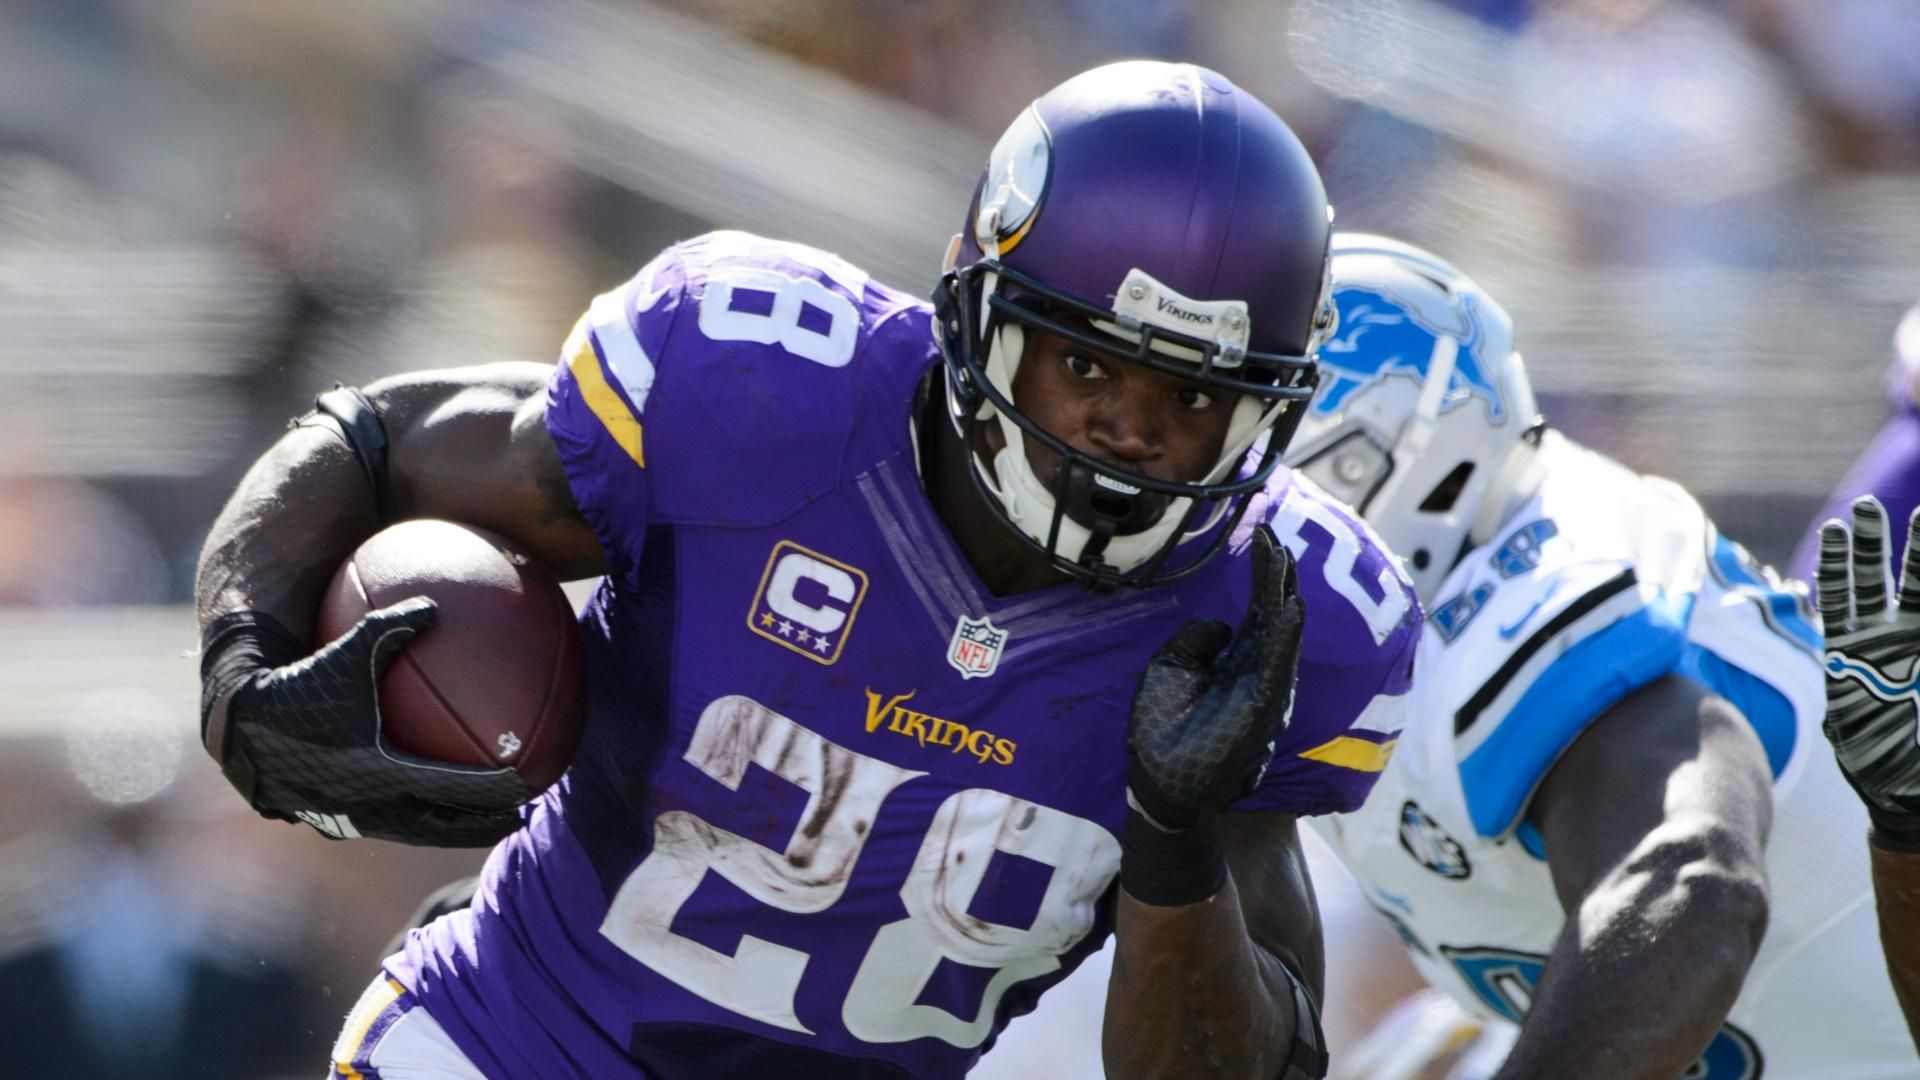 Minnesota vikings rb adrian peterson scores first td since 2013